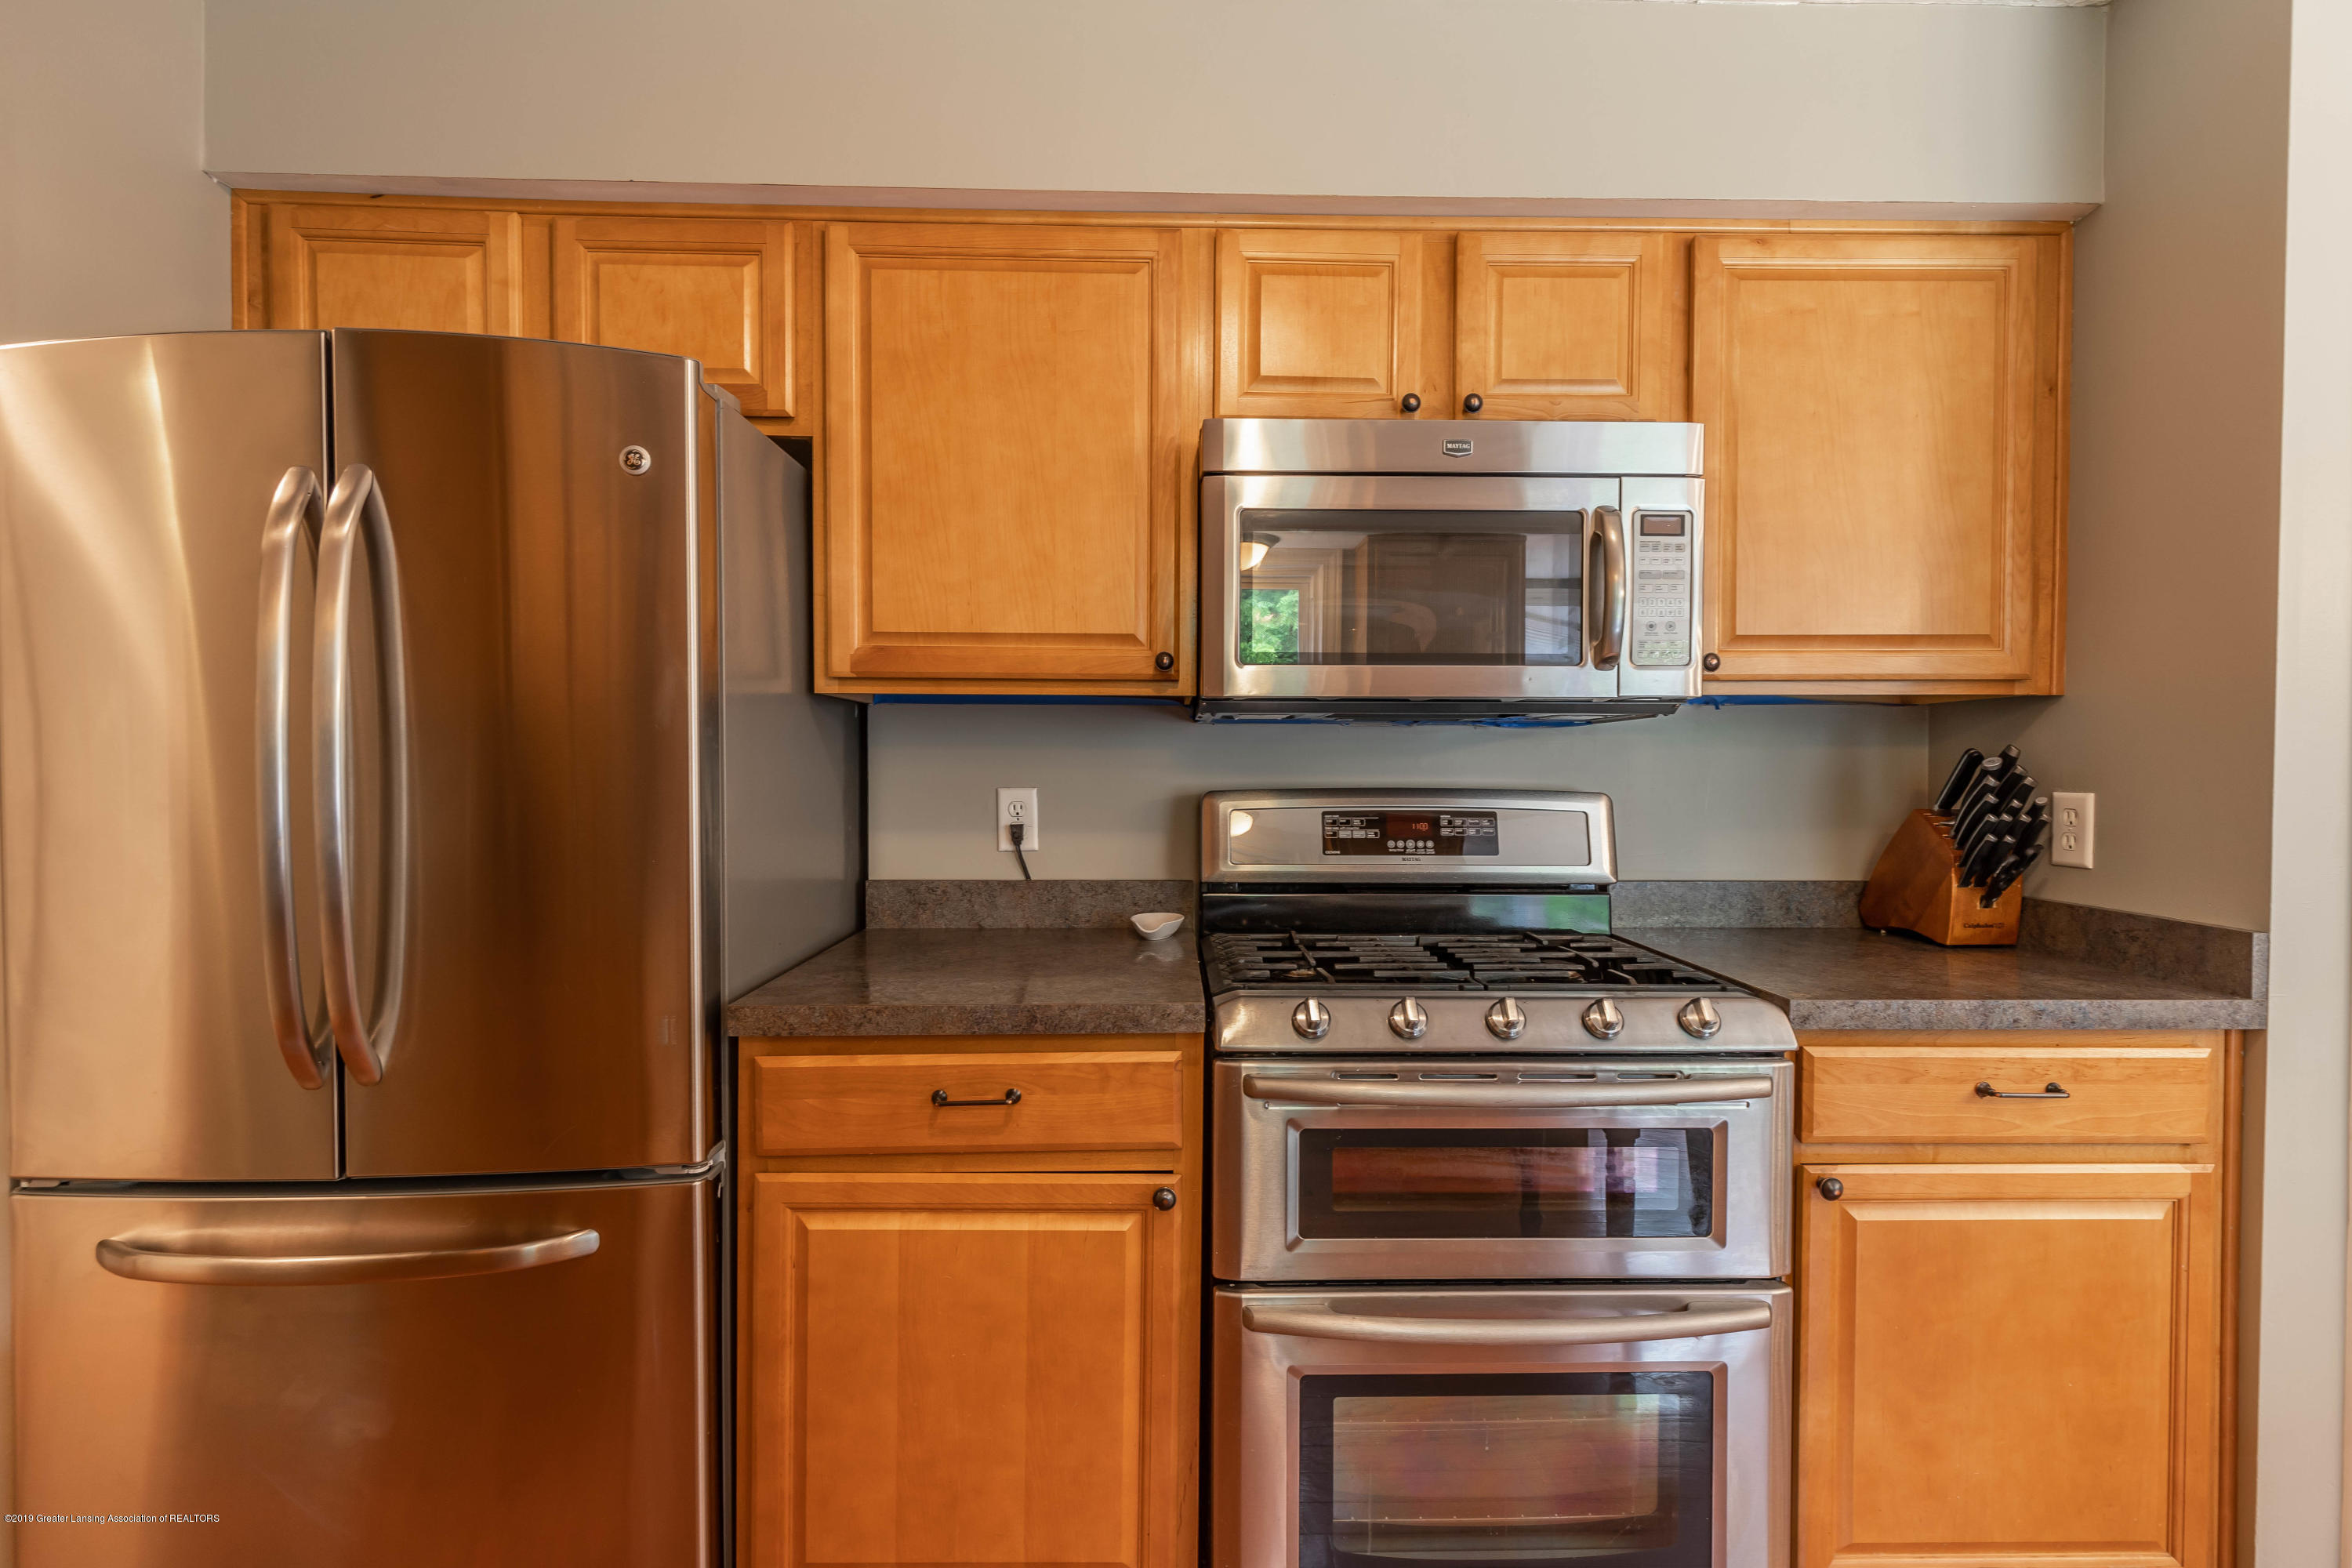 2497 Graystone Dr - 11. Kitchen SS Appliances - 13